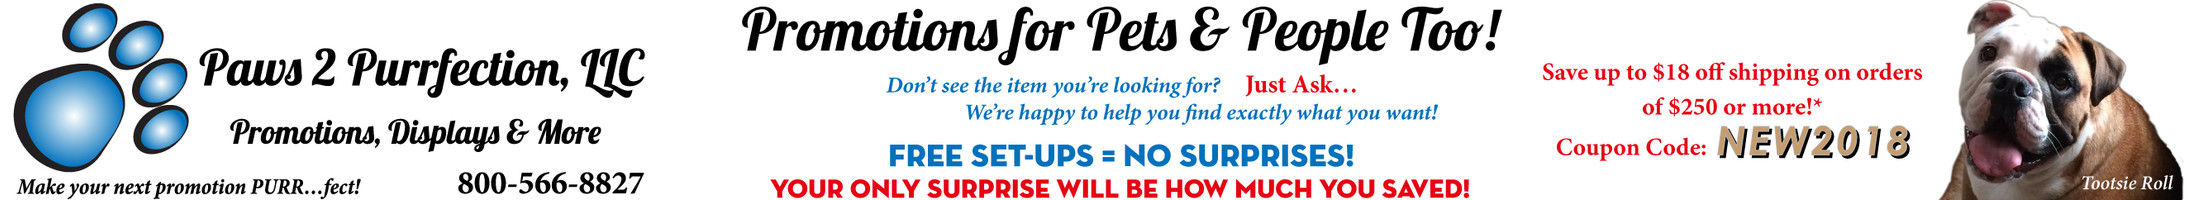 Paws 2 Purrfection, LLC - Promotions, Displays & More